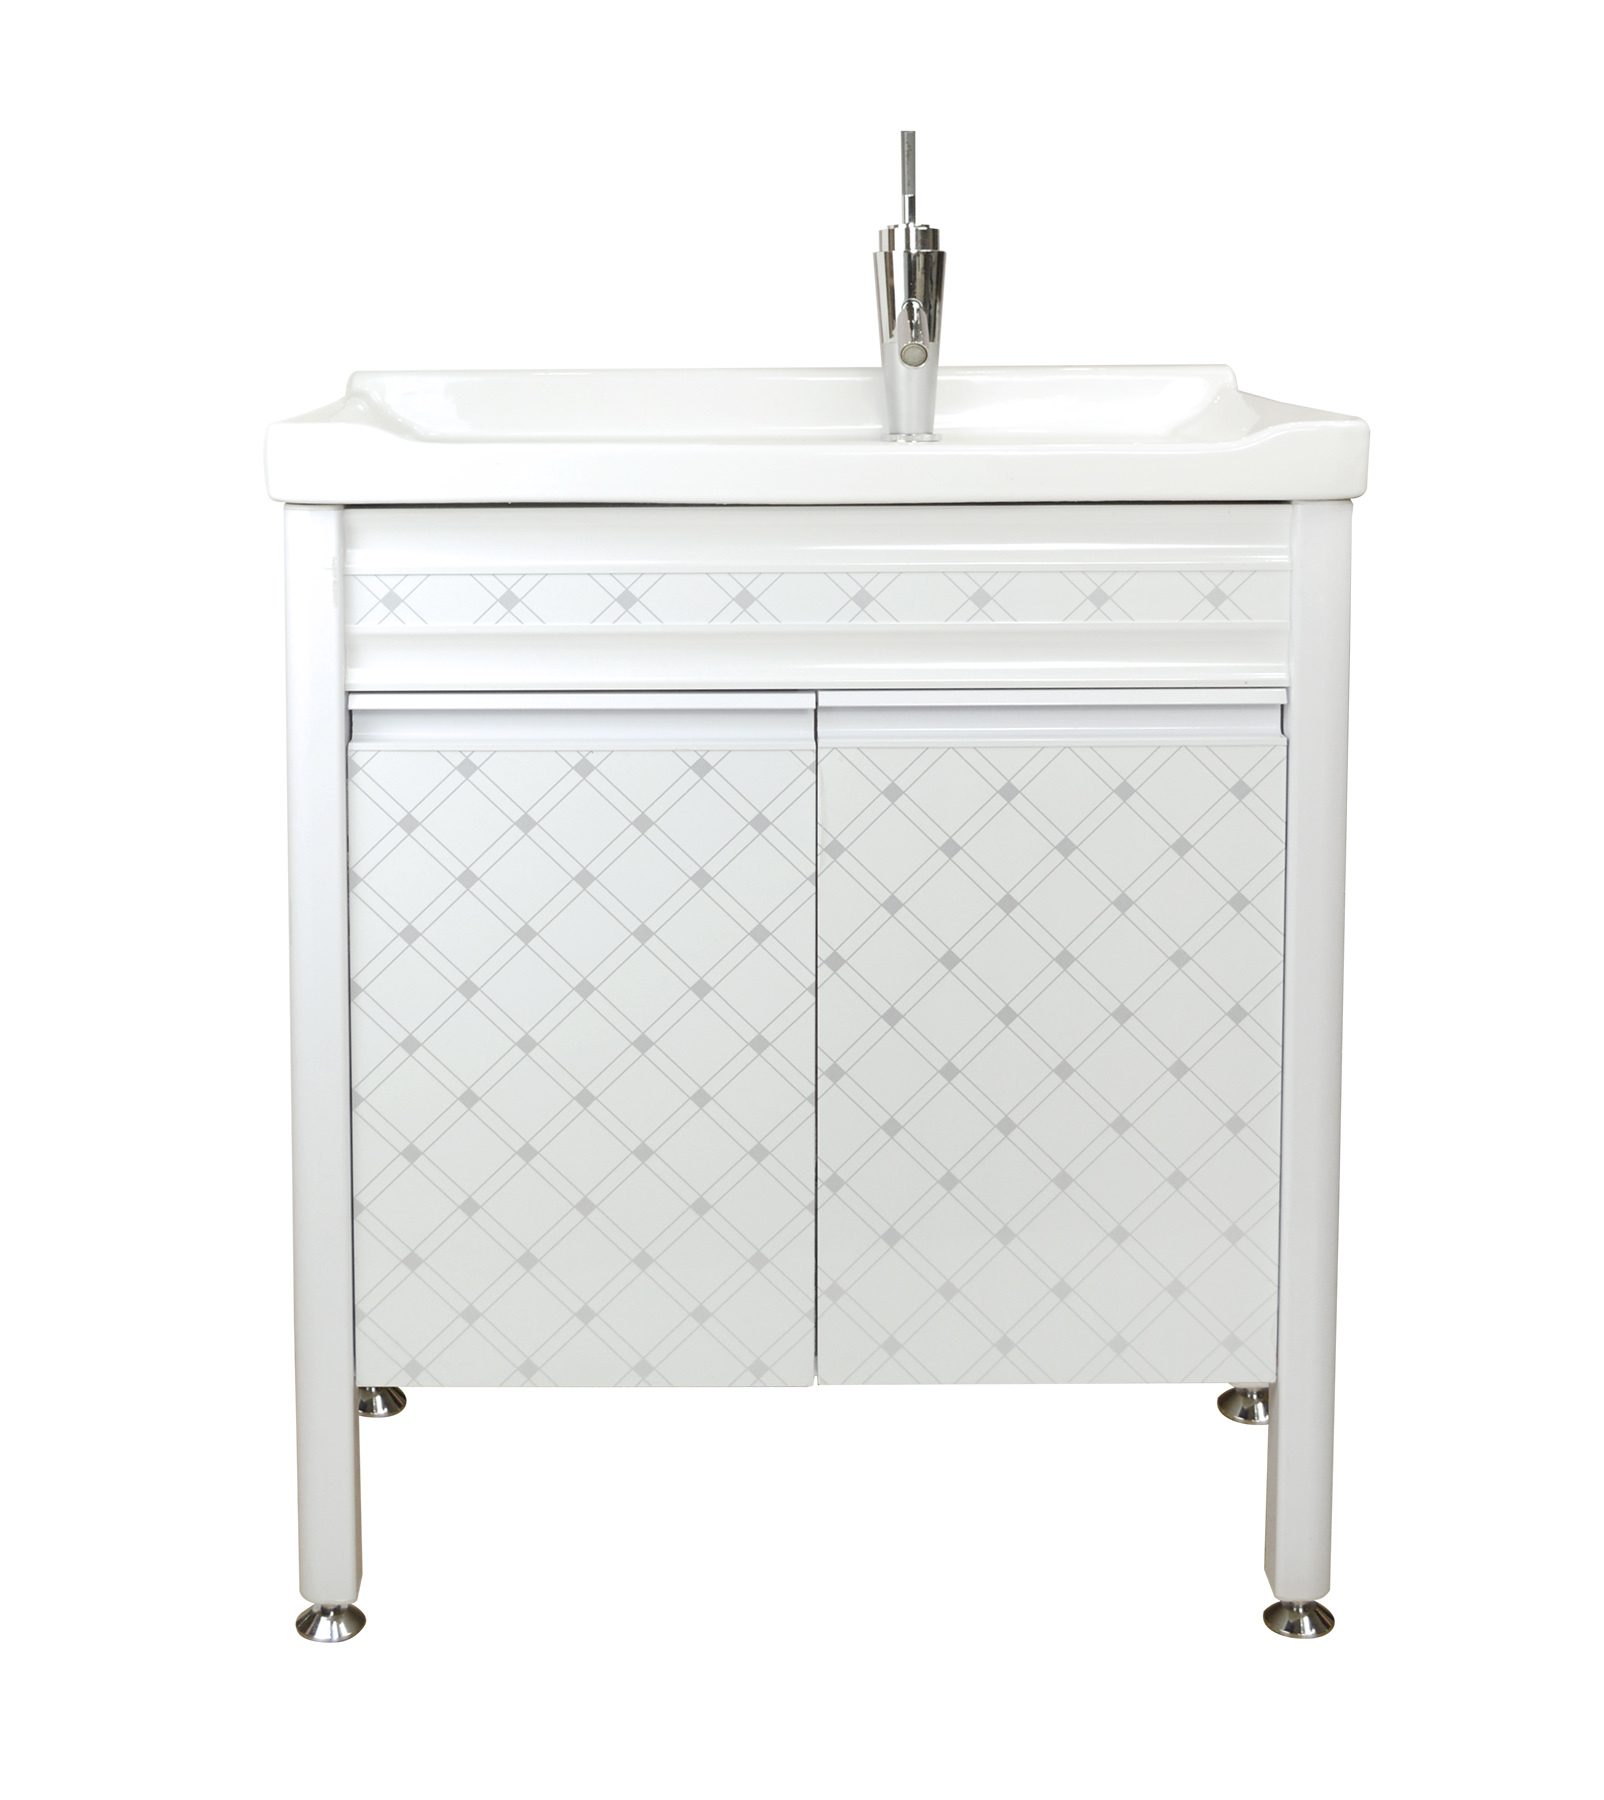 Basin with Cabinet JR3765C